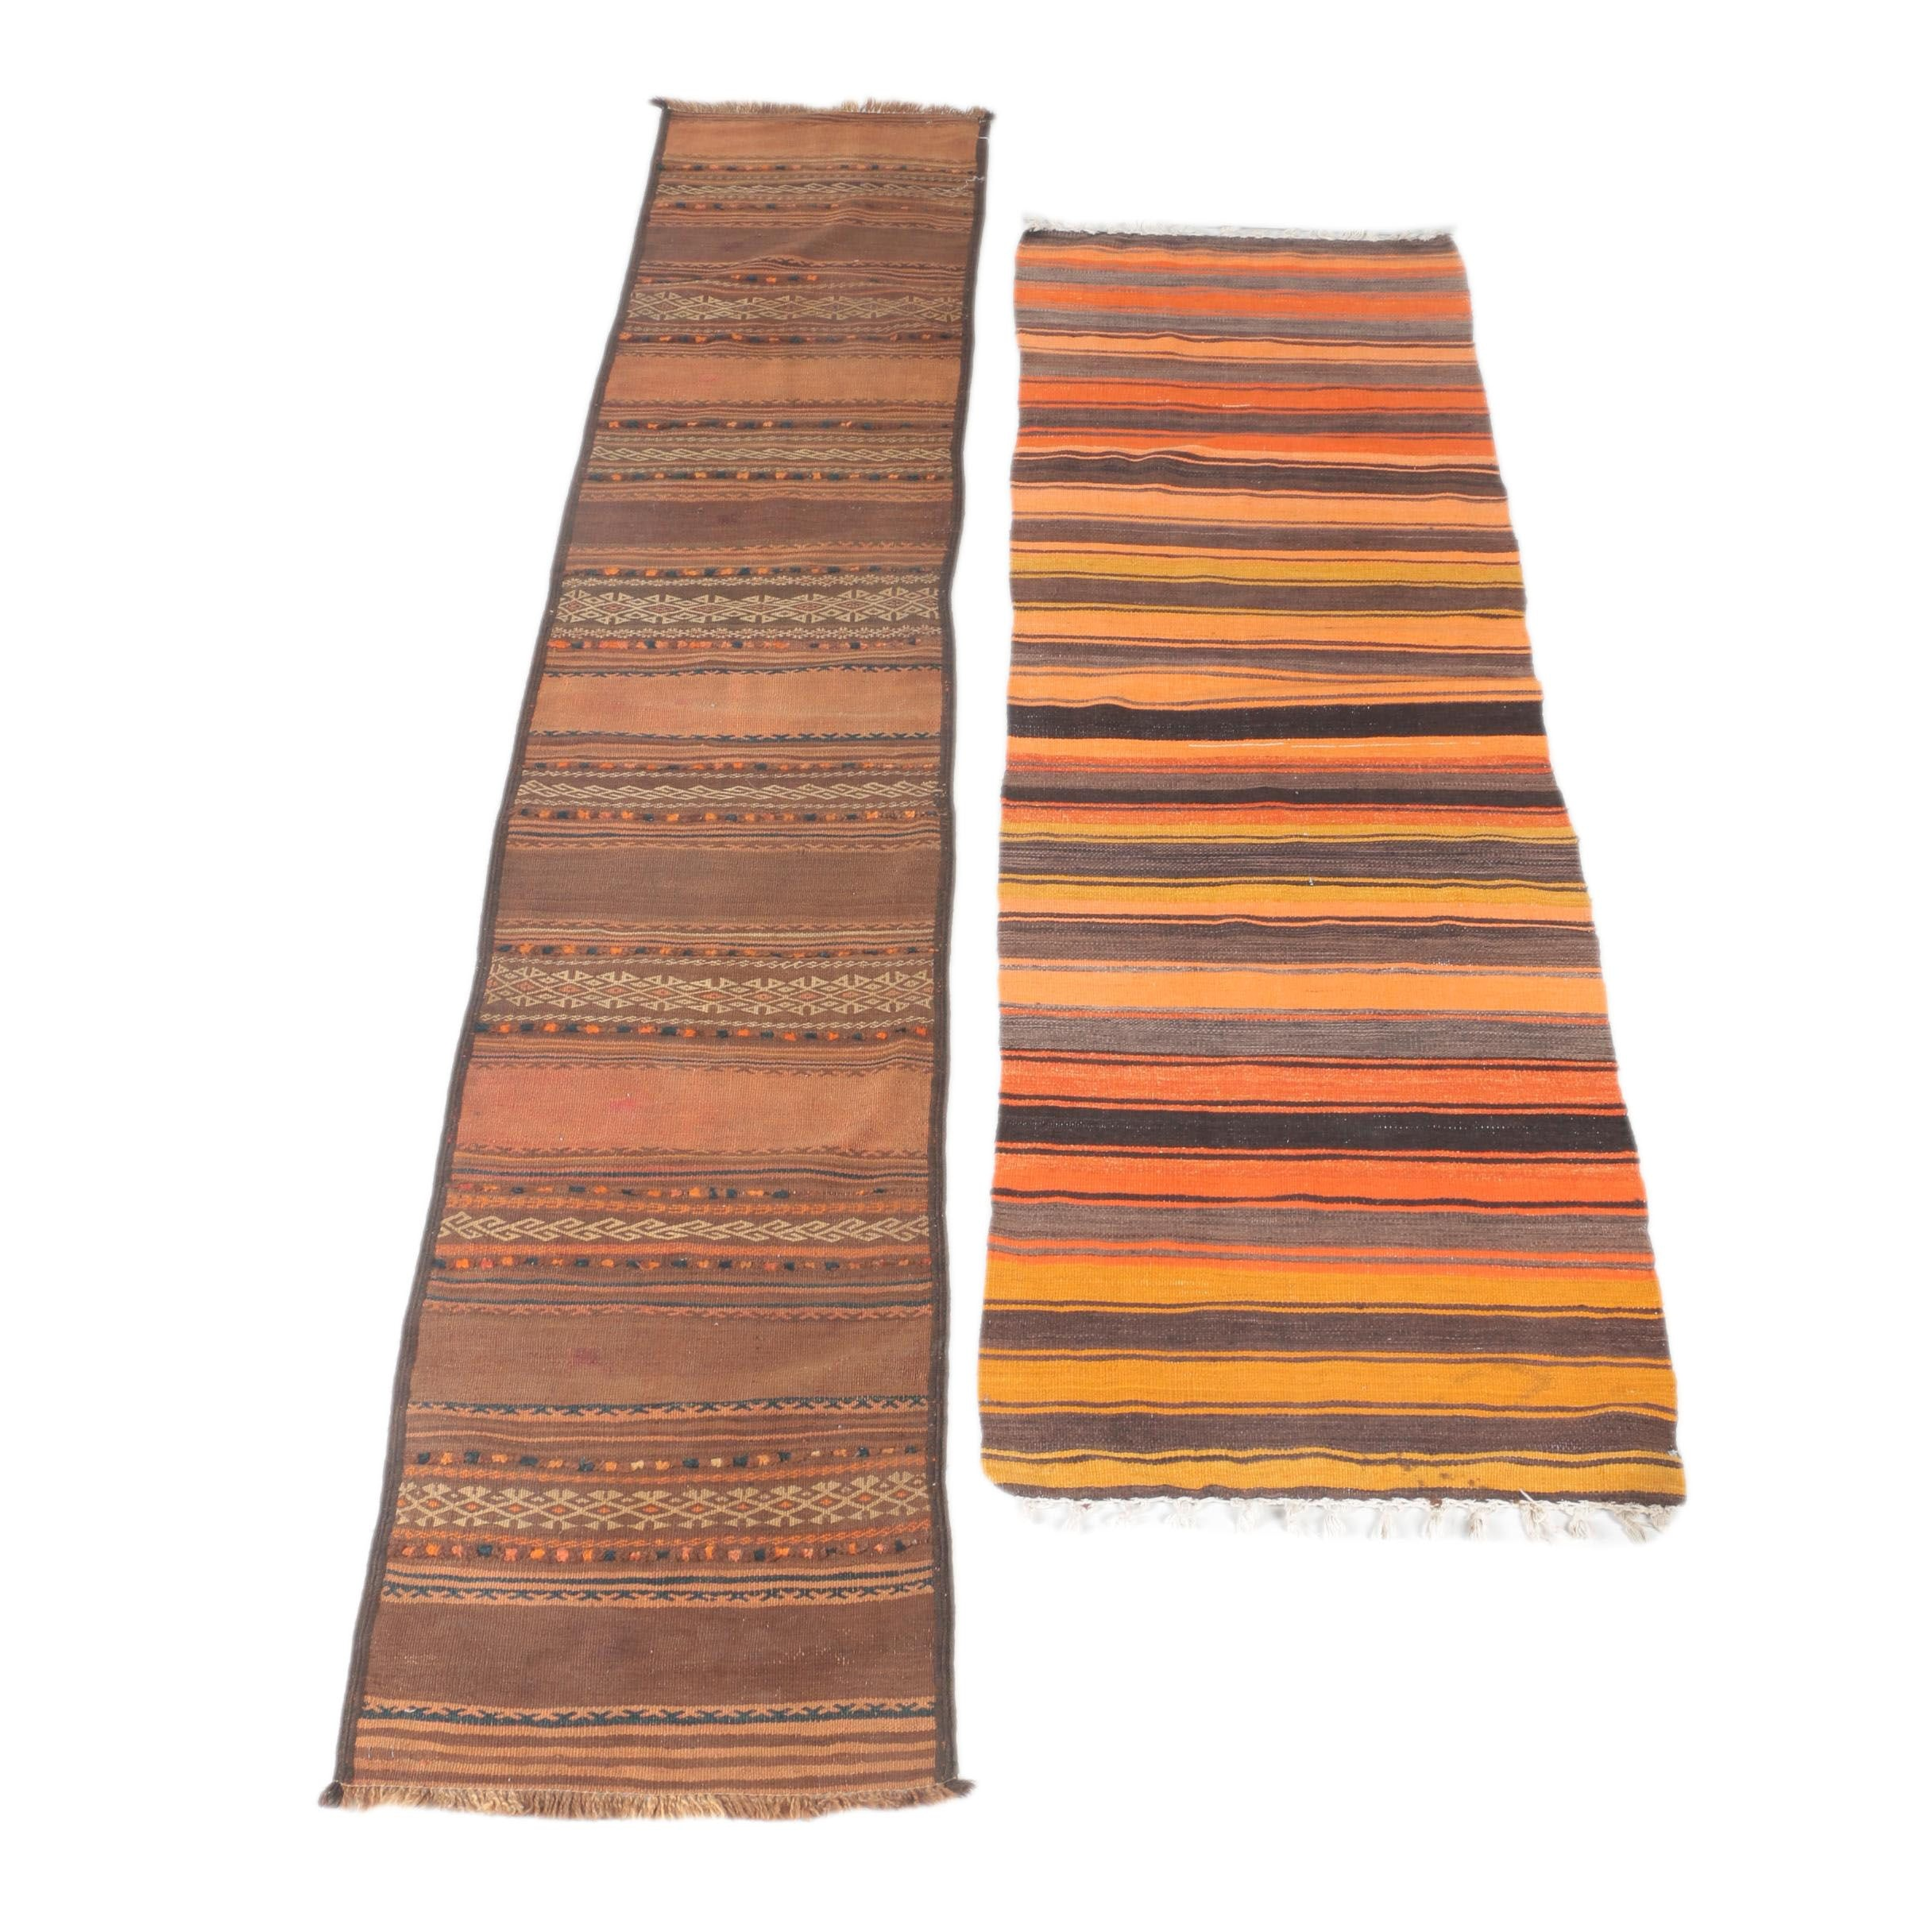 Handwoven Moroccan and Pakistani Wool Carpet Runners